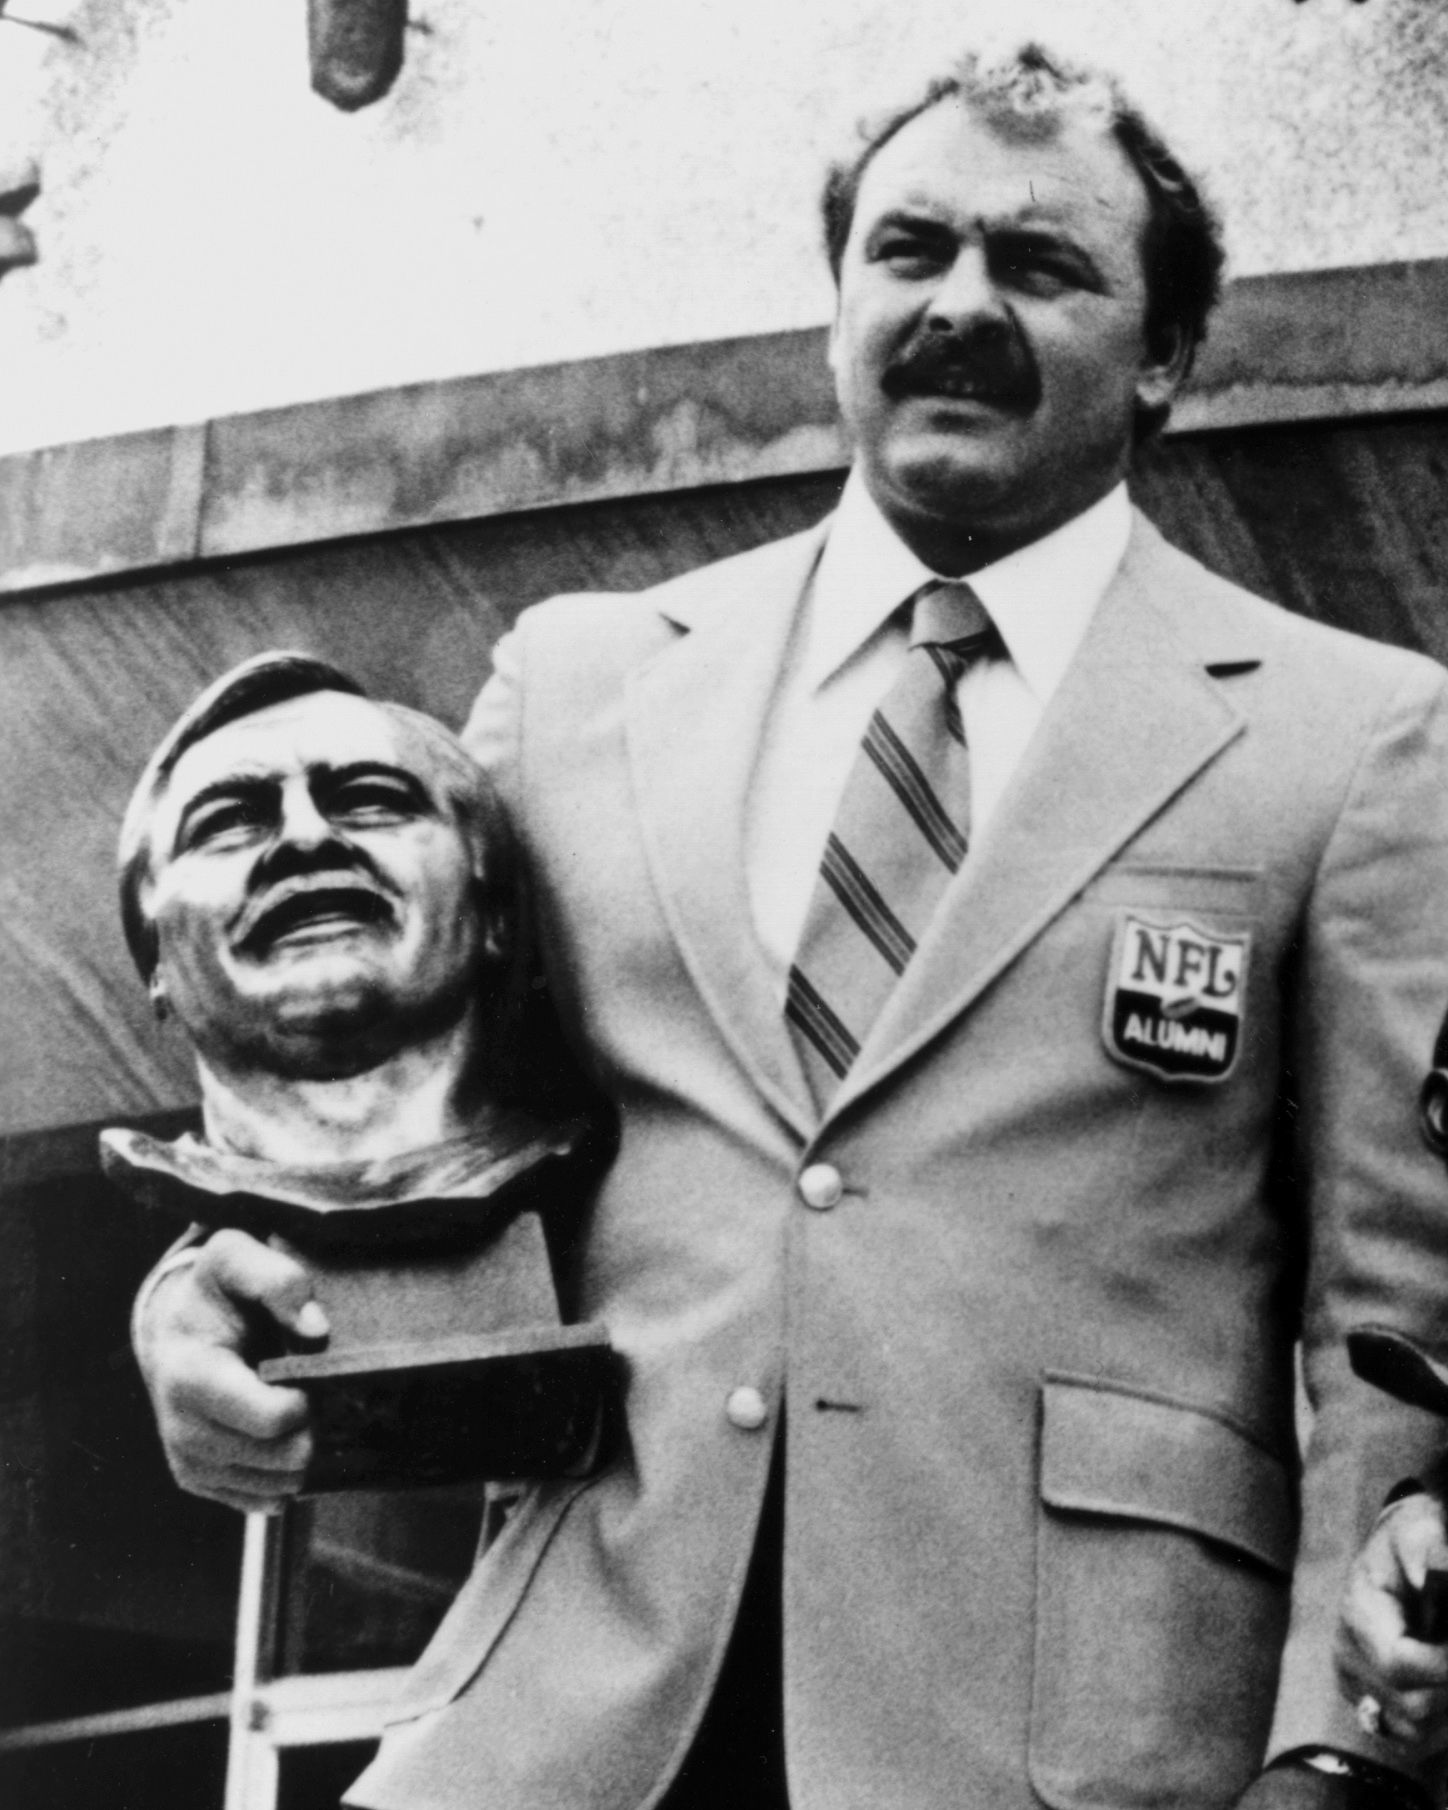 new concept 9517b 30b91 Dick Butkus was a no-brainer for the Hall of Fame, we'd only ...